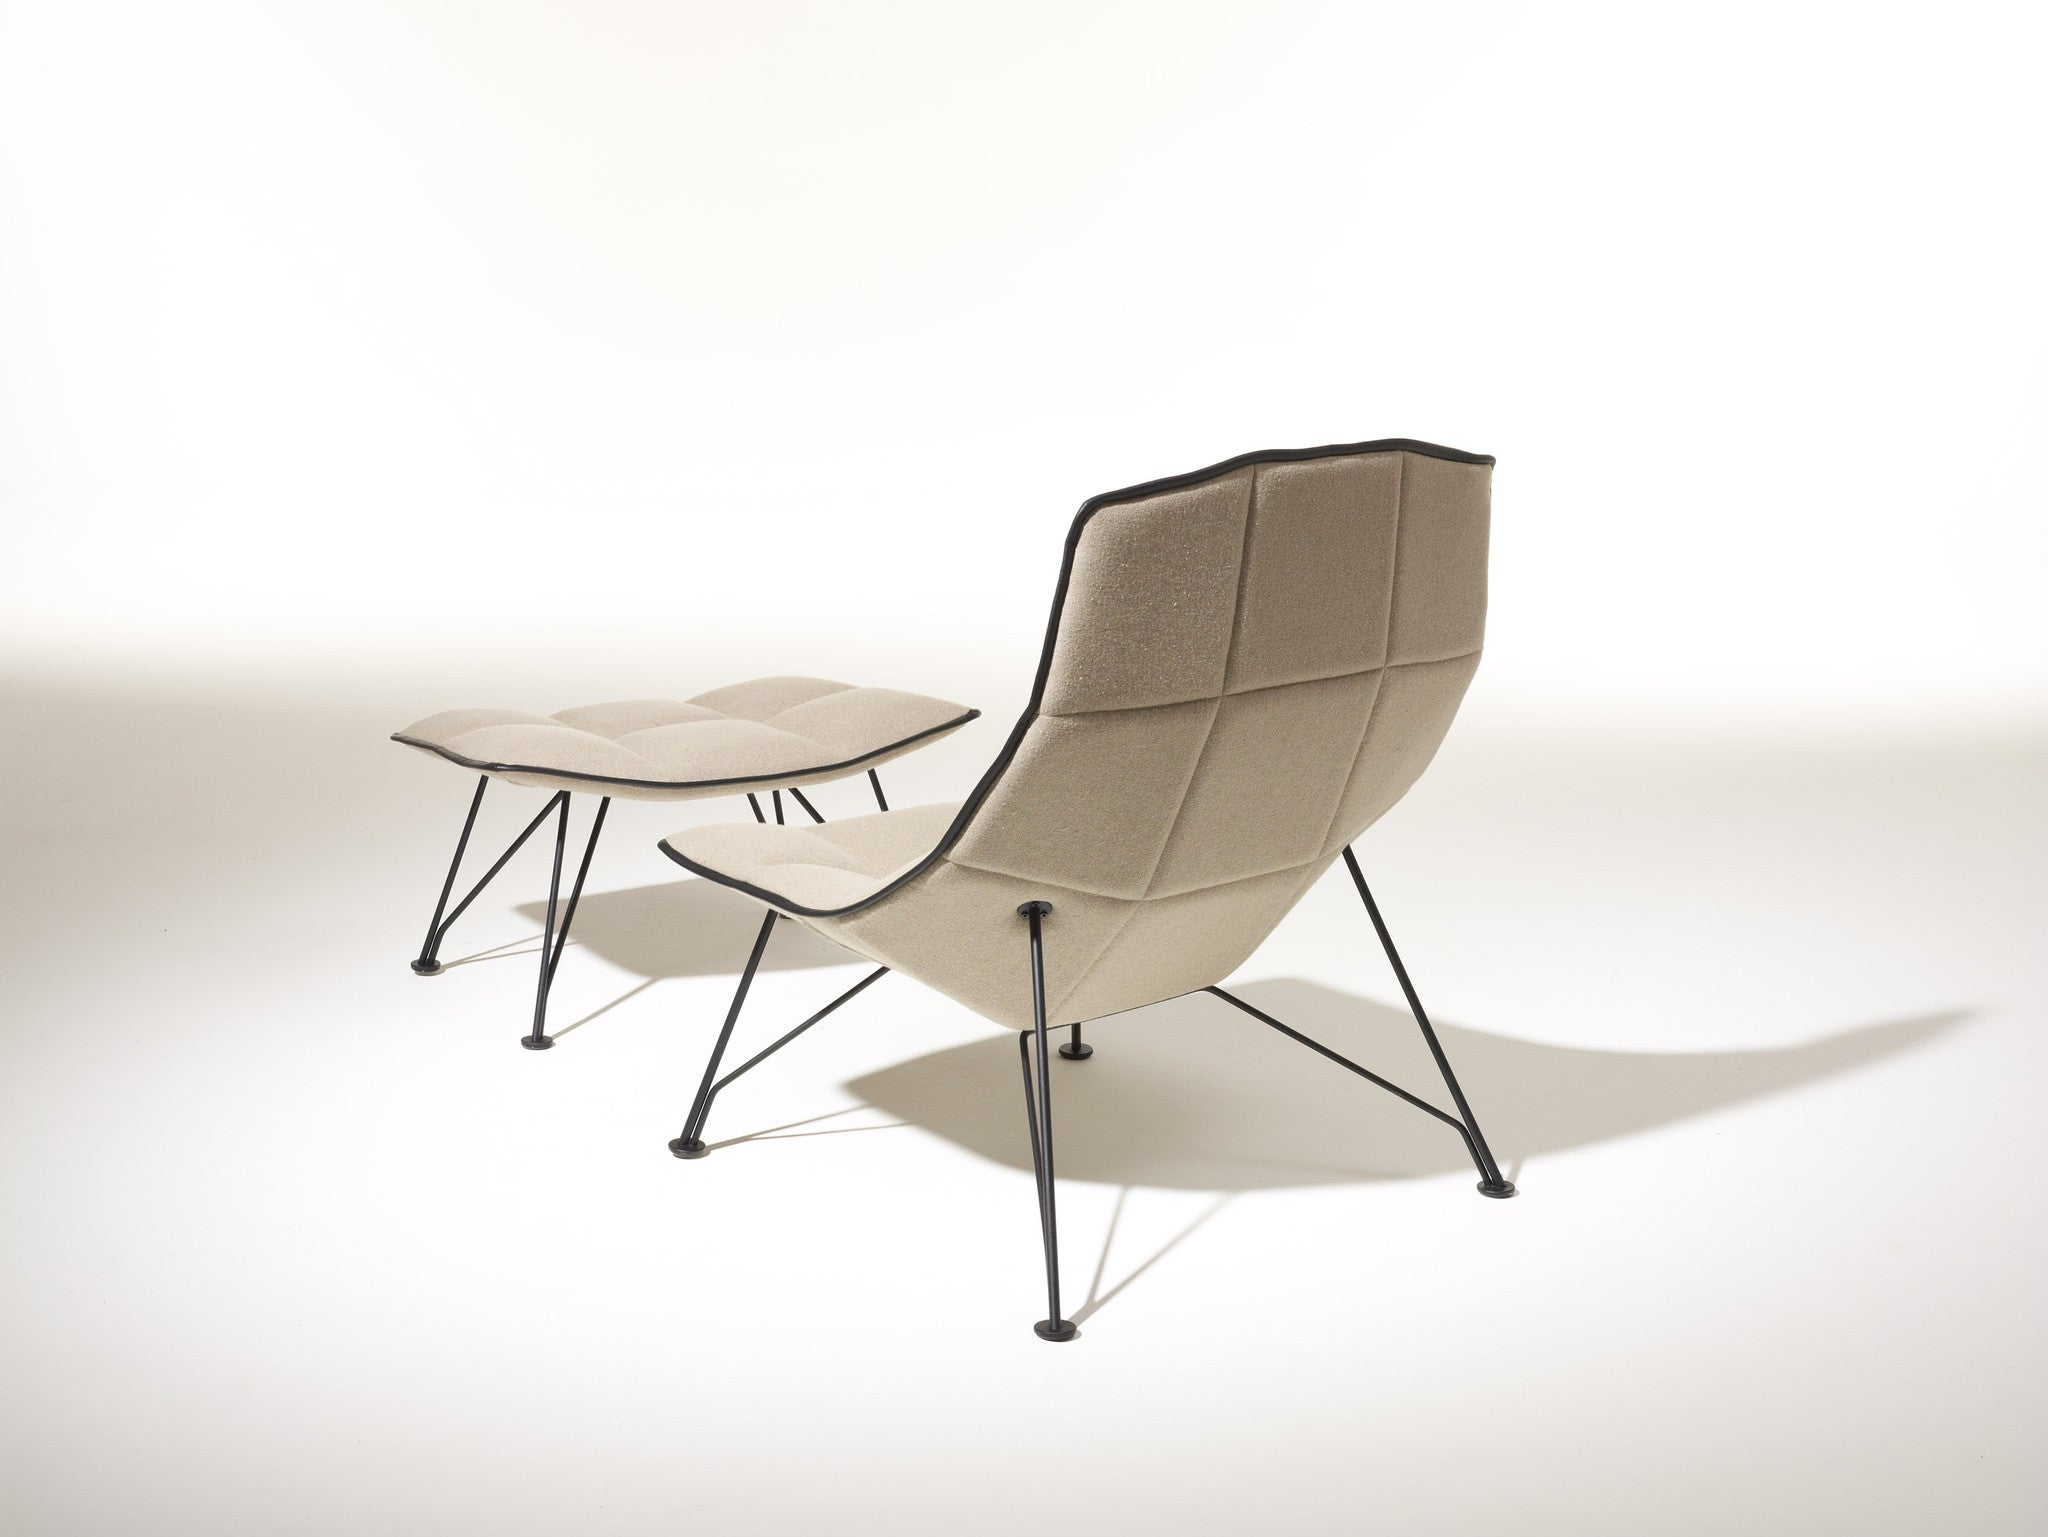 The Jehs+Laub Lounge Chair Wire Base